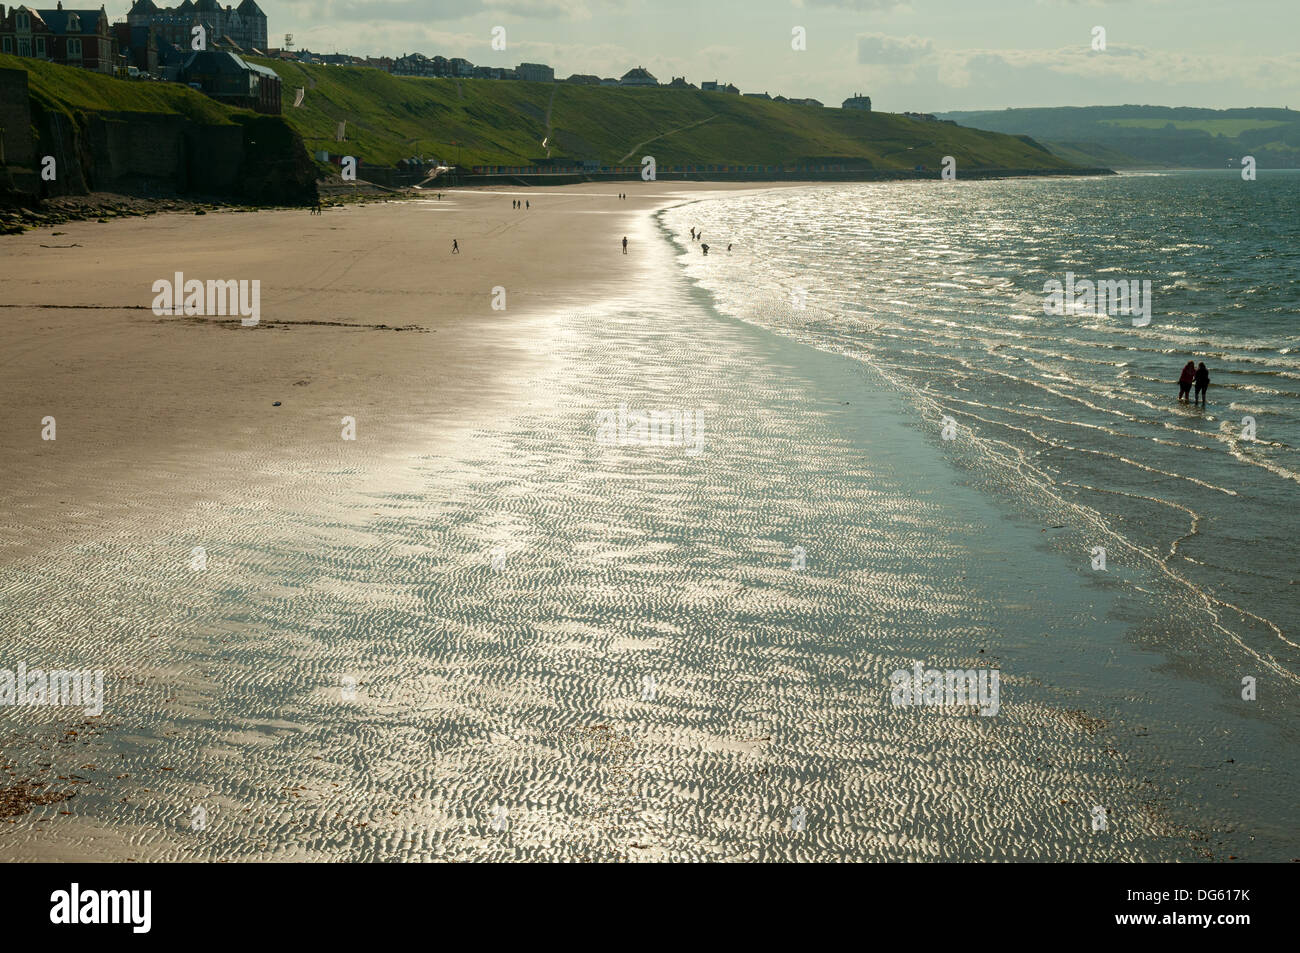 Beach at Whitby, North Yorkshire, England Stock Photo